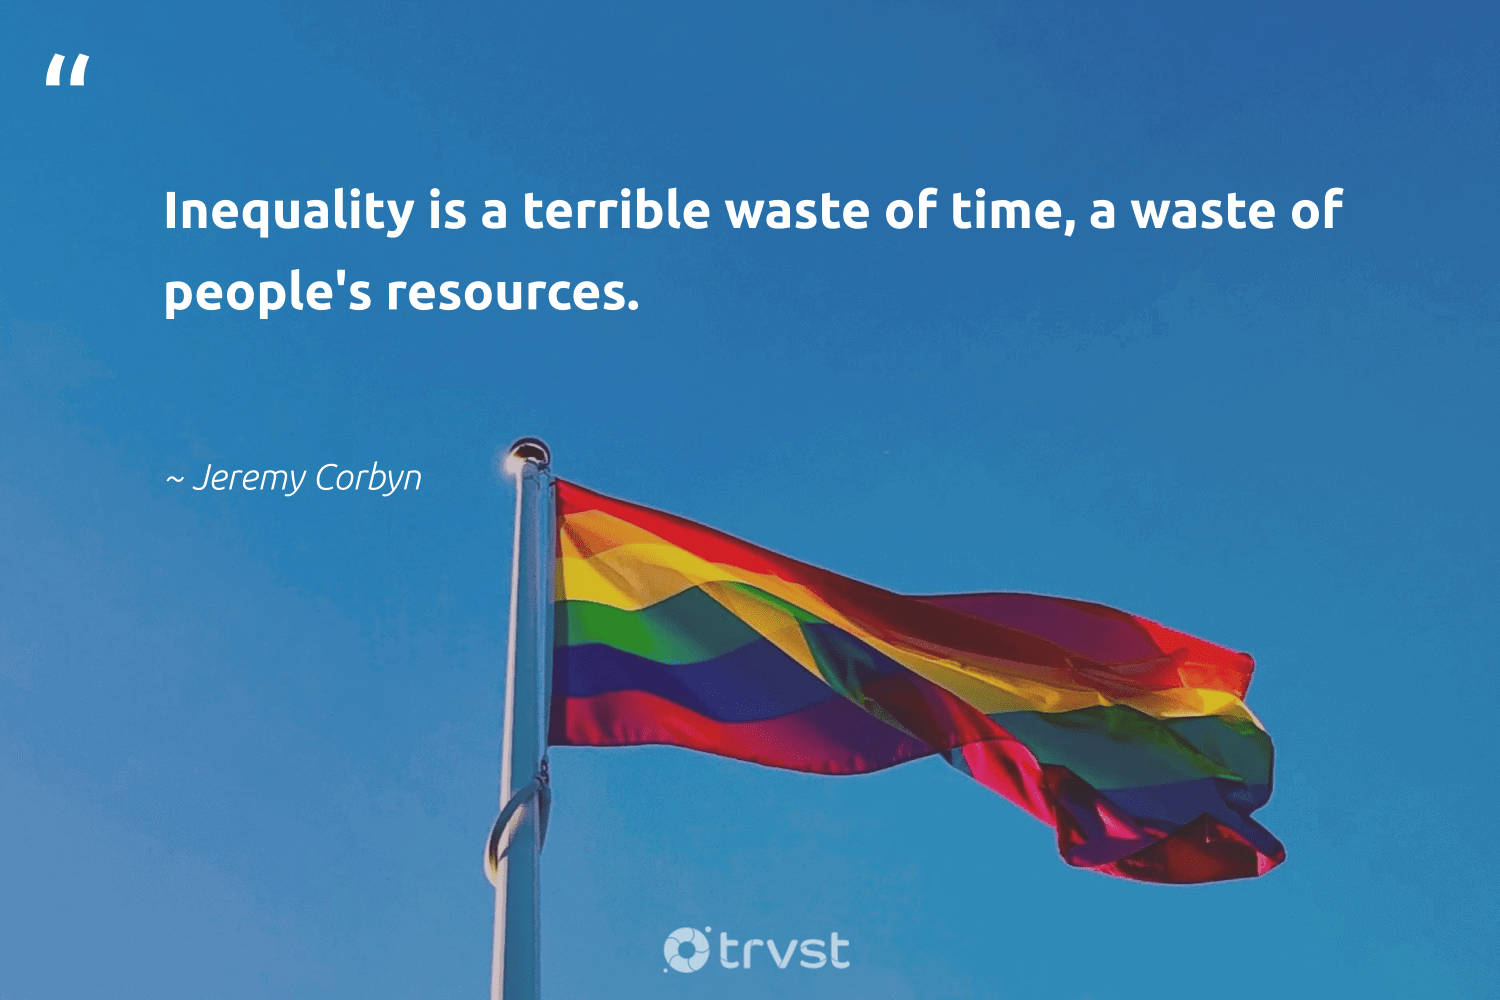 """""""Inequality is a terrible waste of time, a waste of people's resources.""""  - Jeremy Corbyn #trvst #quotes #waste #giveback #collectiveaction #socialgood #beinspired #bethechange #socialchange #weareallone #changetheworld #makeadifference"""